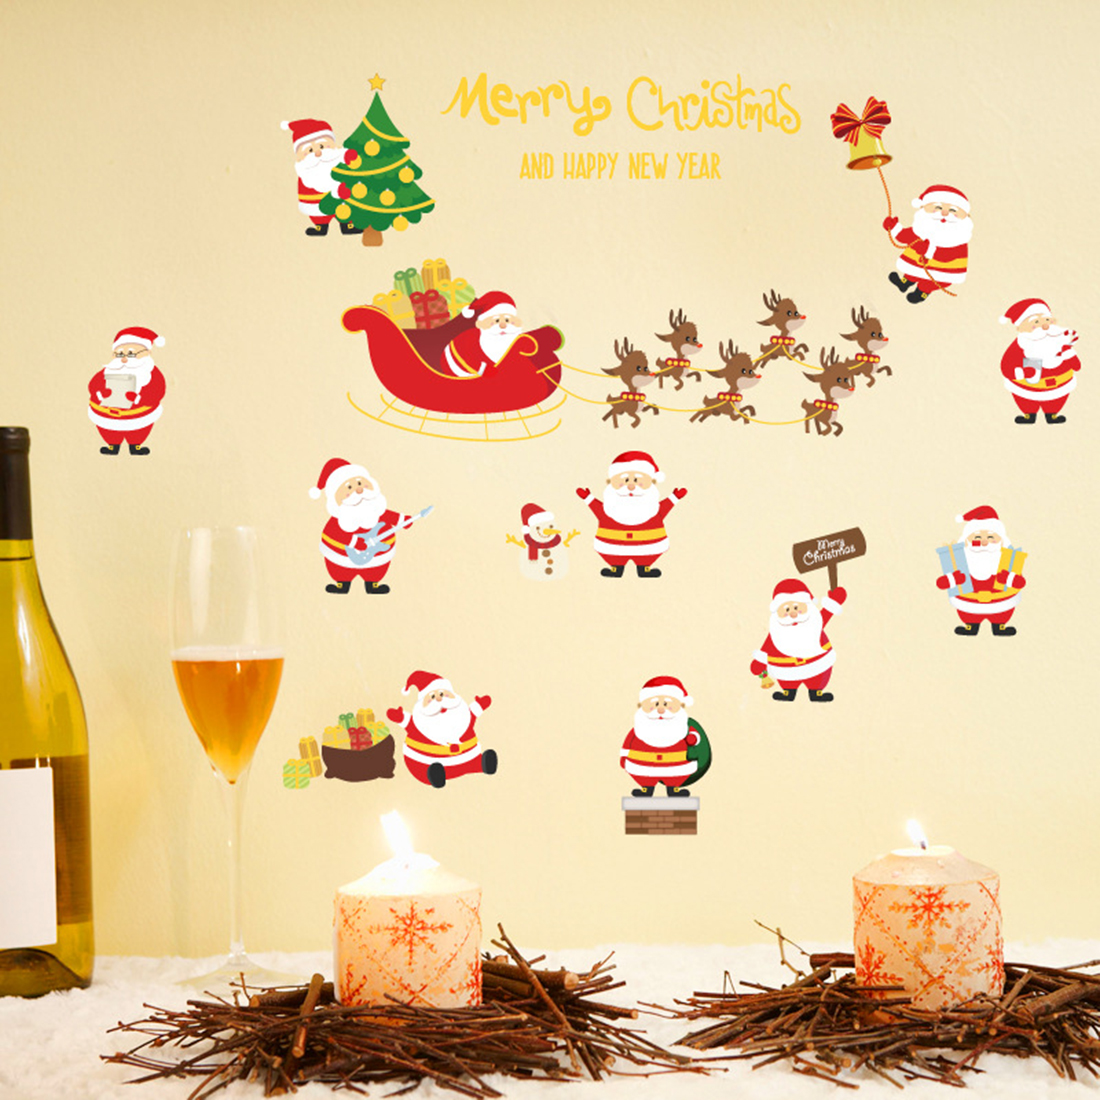 Merry Christmas Wall Stickers Santa Claus Tree Wall Decals Home Living Room Shop Door Window Glass Happy New Year Wall Stickers